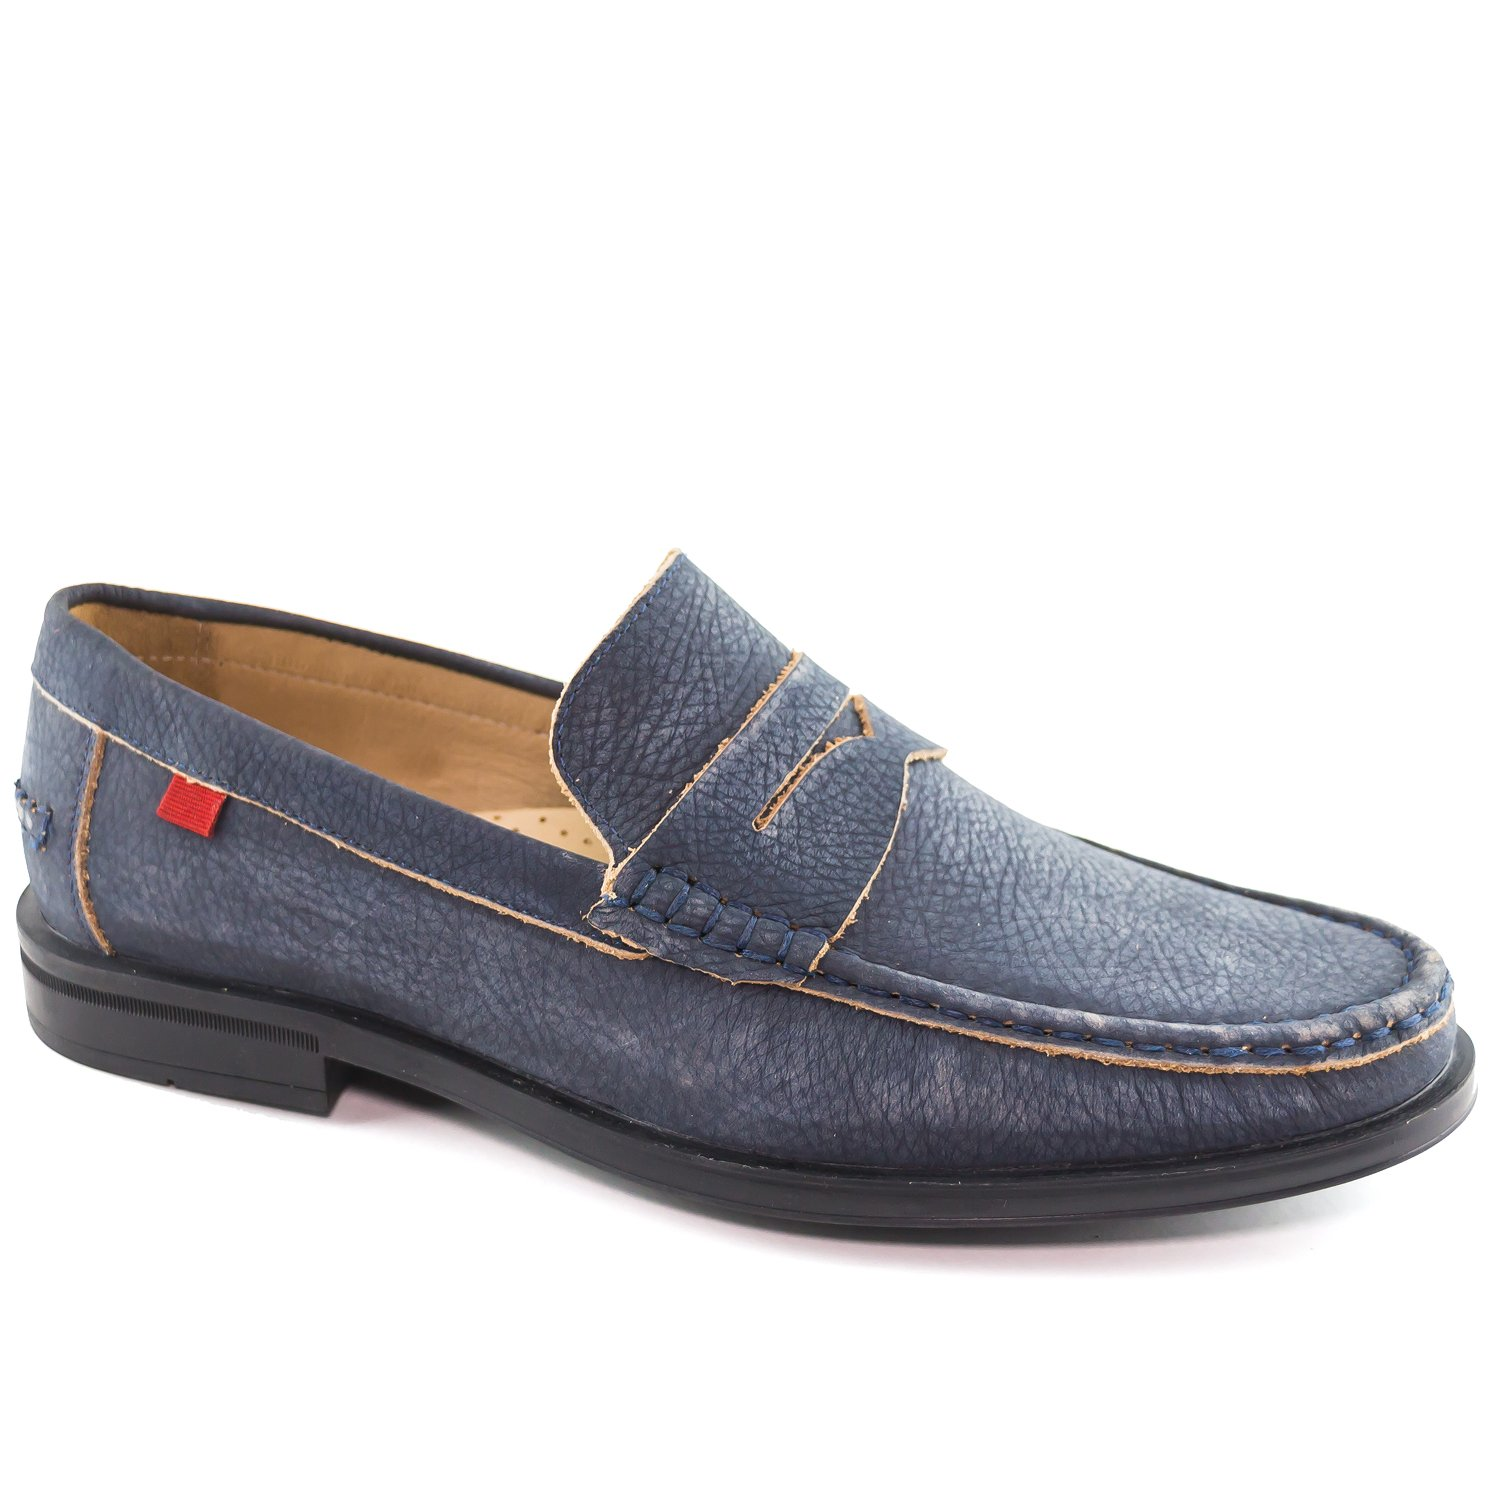 Mens Genuine Leather Made In Brazil Cortland Street Venetian Navy Vintage Leather Loafer Marc Joseph NY Fashion Shoes 12